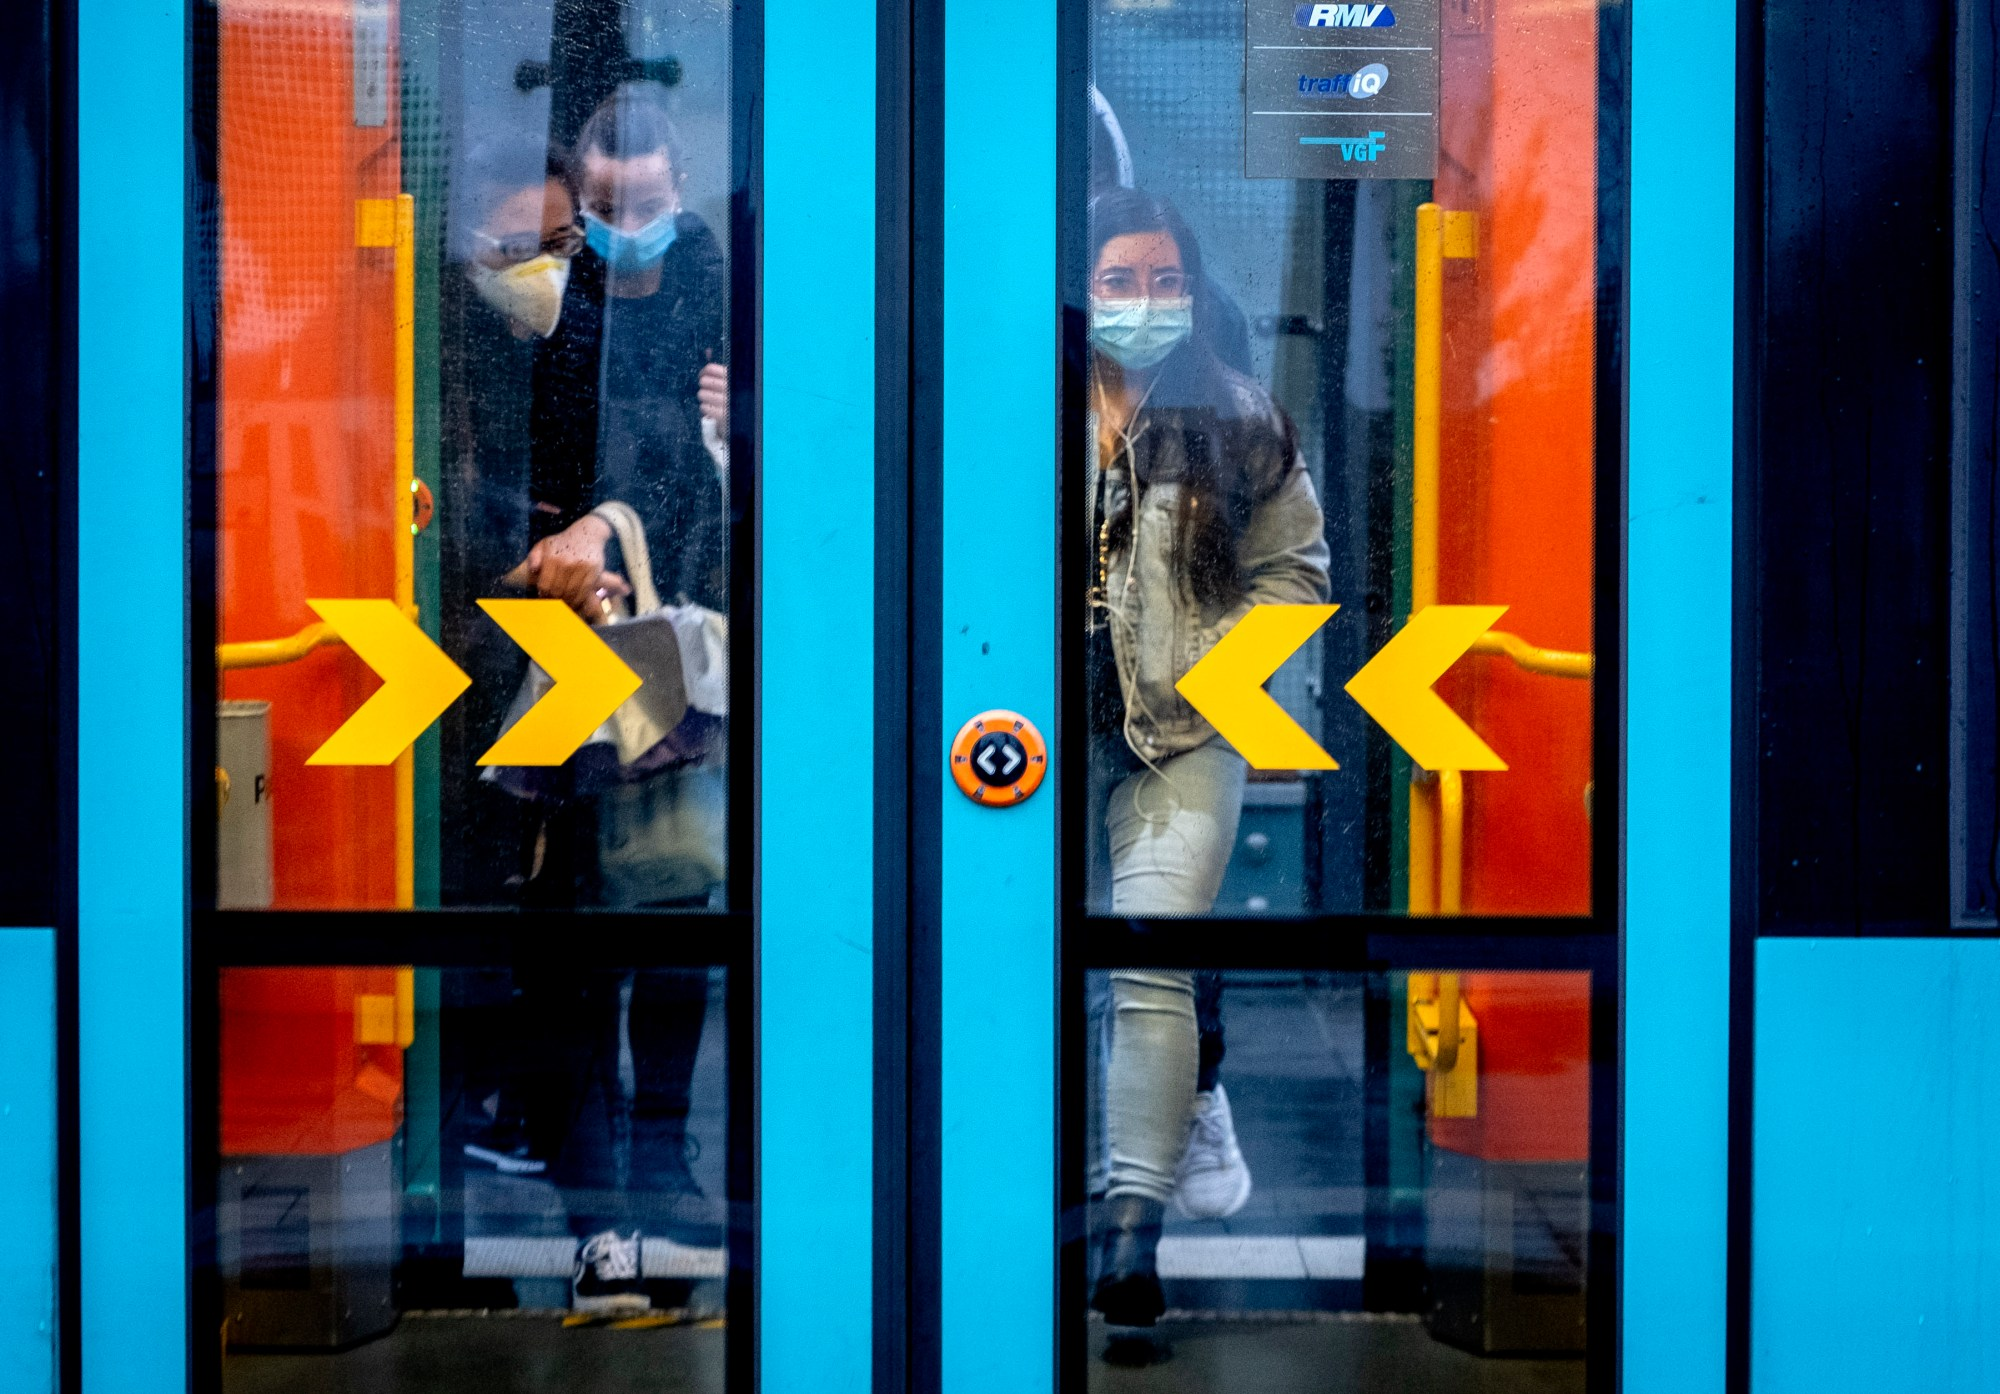 Passengers wear face mask mask as they enter a subway in Frankfurt, Germany on Oct. 28, 2020. (Michael Probst/Associated Press)